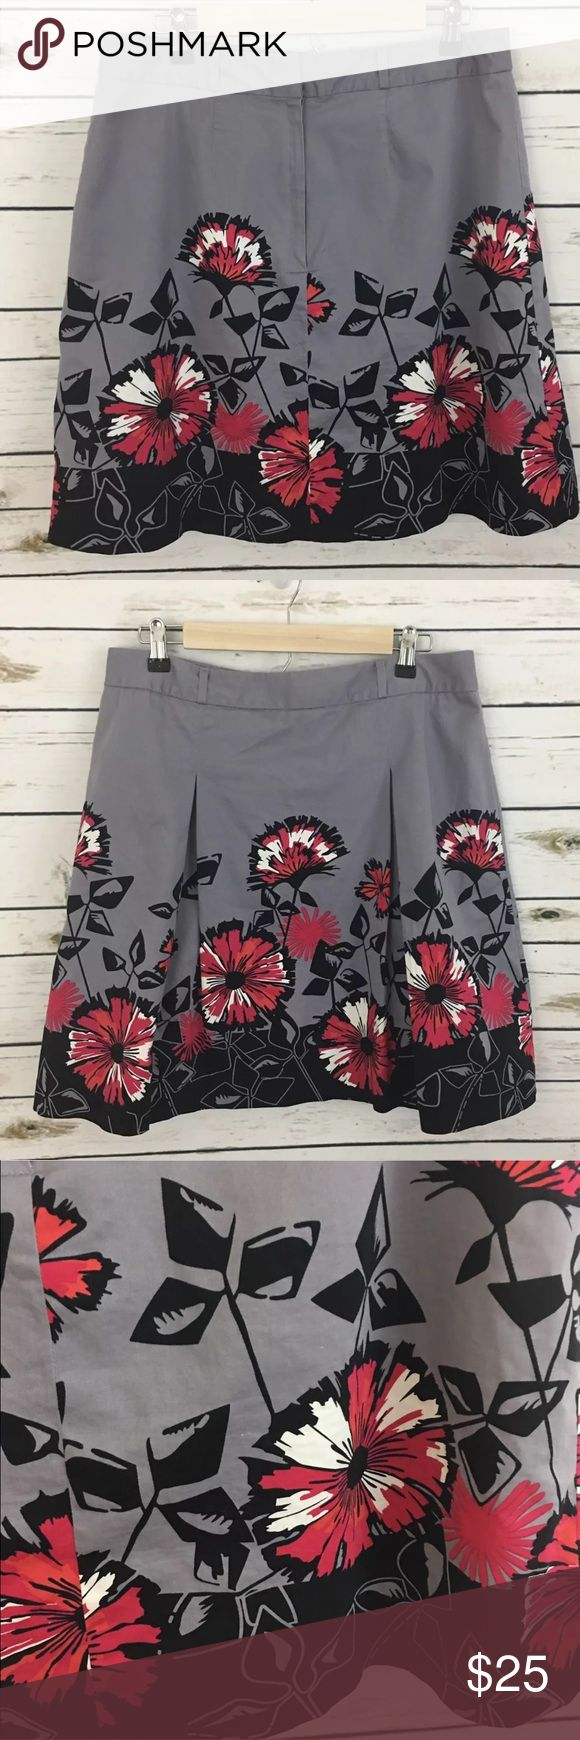 """Apt. 9 Pleated Lined A-Line Skirt Apt. 9 Women's Black Gray Pleated Lined A-Line Skirt Size 12 Casual Career  Measurements:  Waist - 16"""" Length - 20""""  Material - 97% cotton 3% spandex  Inventory # - B2 Apt.9 Skirts A-Line or Full"""